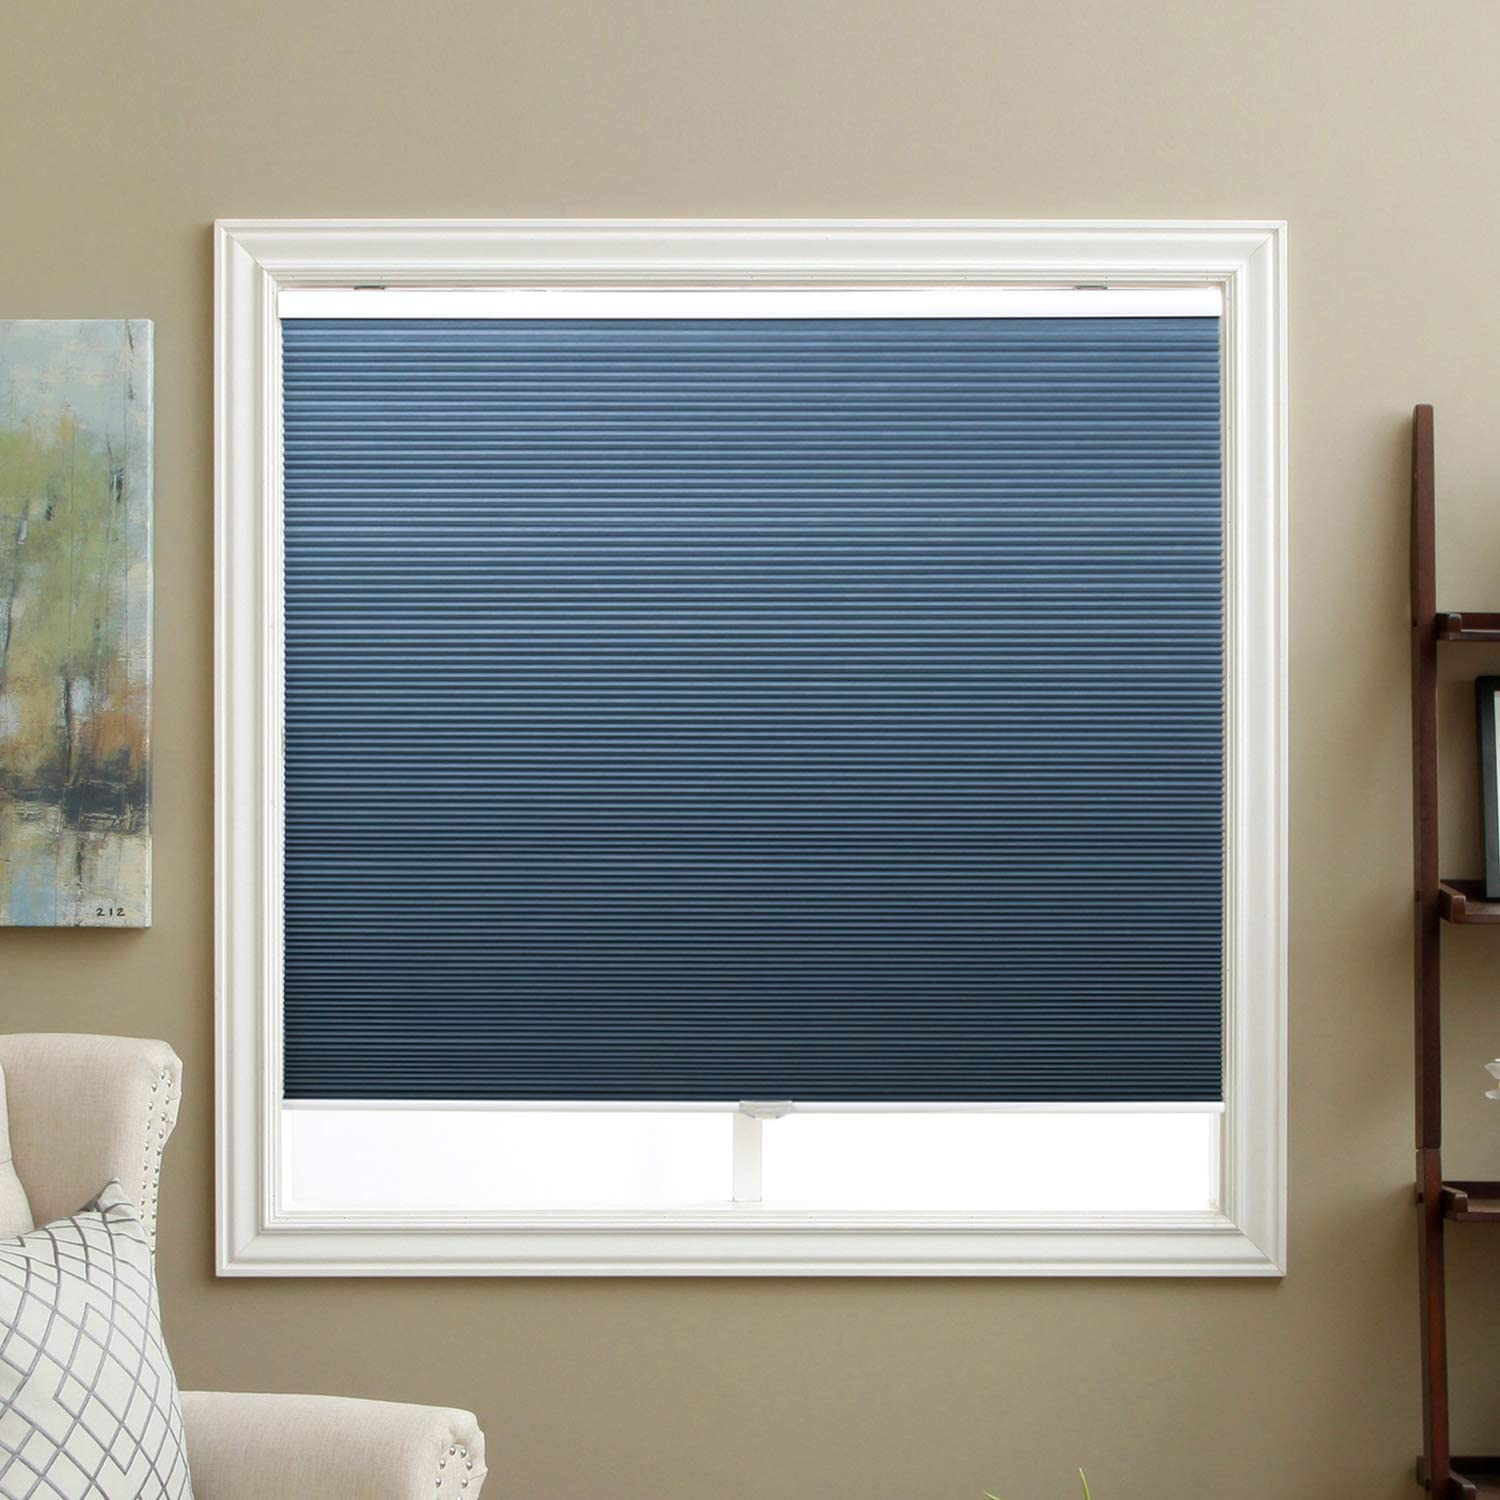 SBARTAR Blinds for Windows, Blackout Window Blinds and Shades for Home Bedroom Nursery, 28 inch Wide x 38 inch Long, Ocean Blue(Blackout)